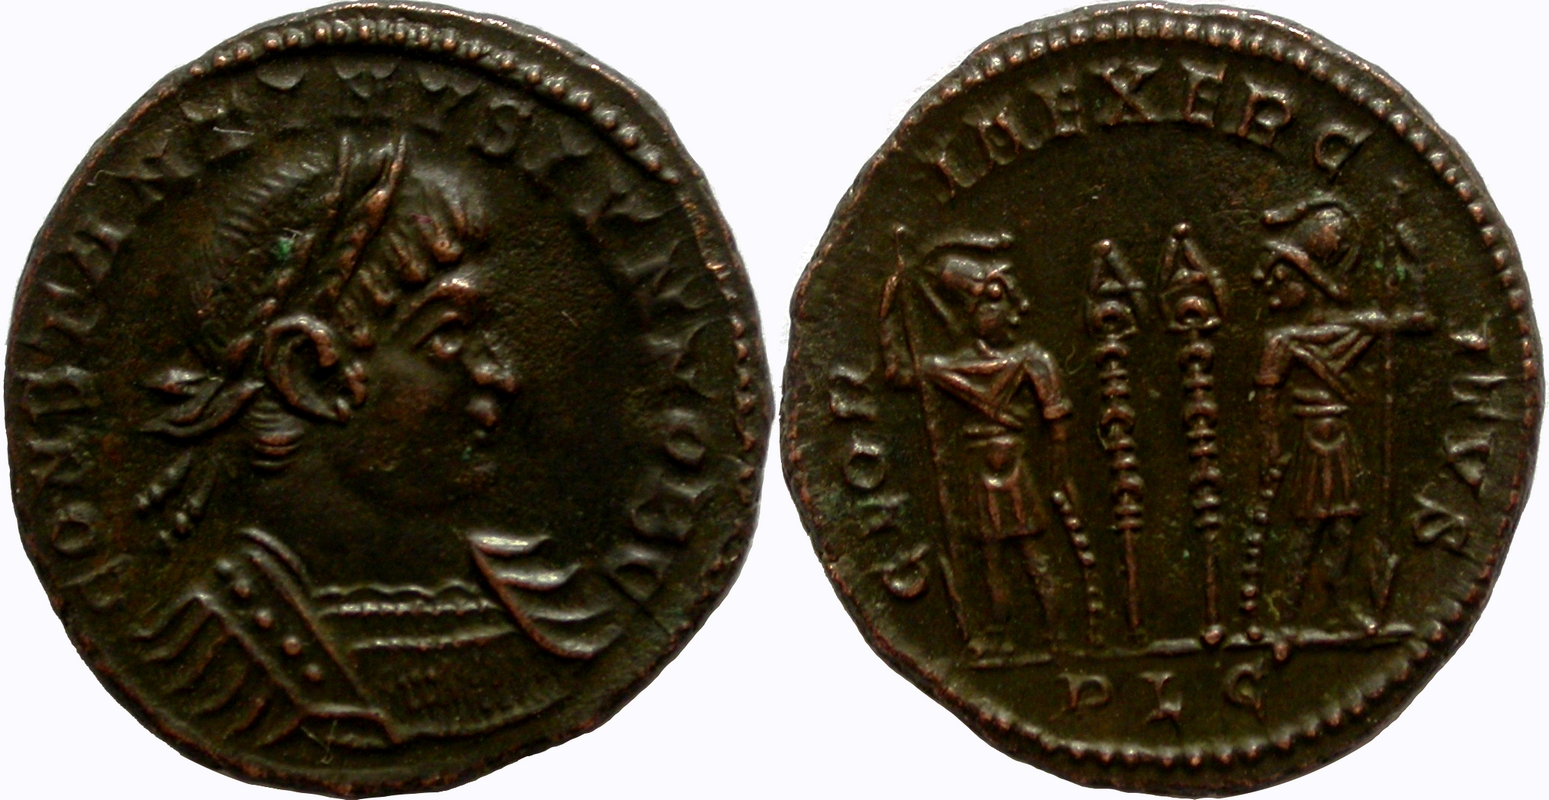 Collection Lombardus - Page 5 845240CONSTANTINIILYONGLORIAEXERCITVSPLGRIC2381718mm2g9411h201704